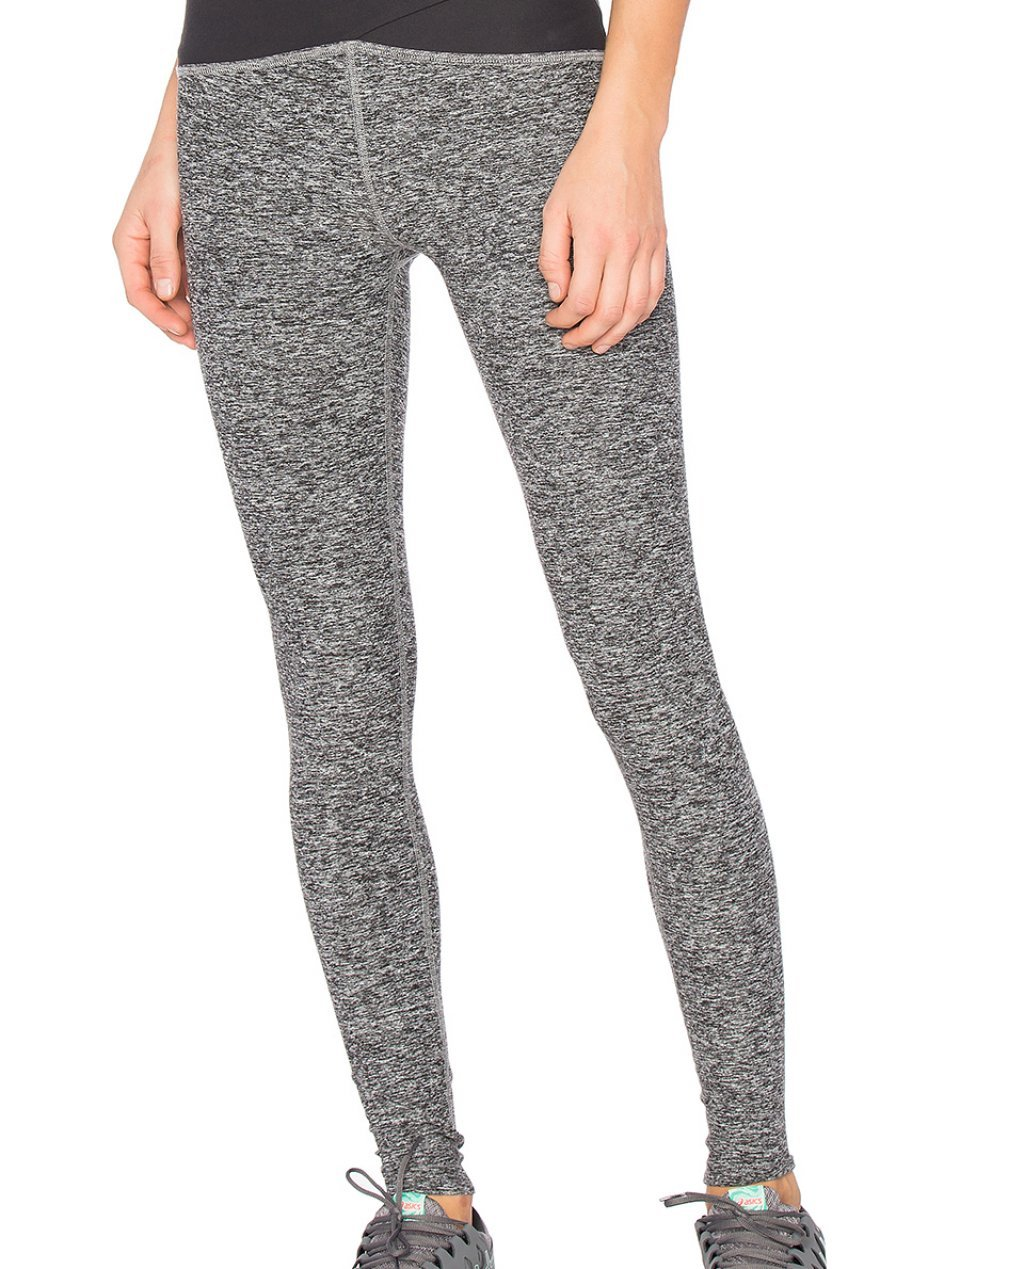 East Bound Legging